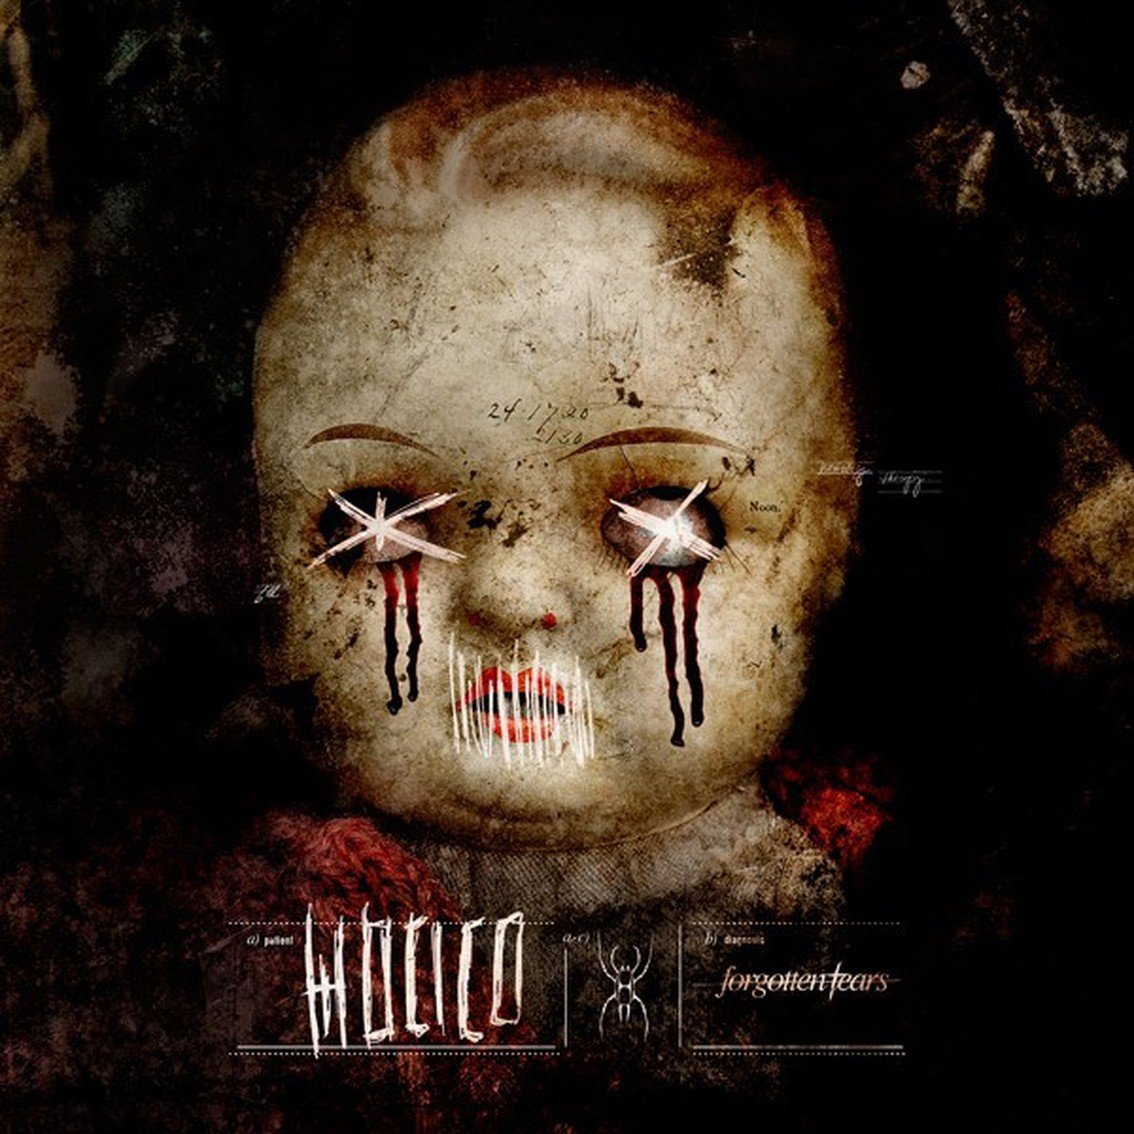 Hocico finally to release 'Forgotten Tears' as a standalone single